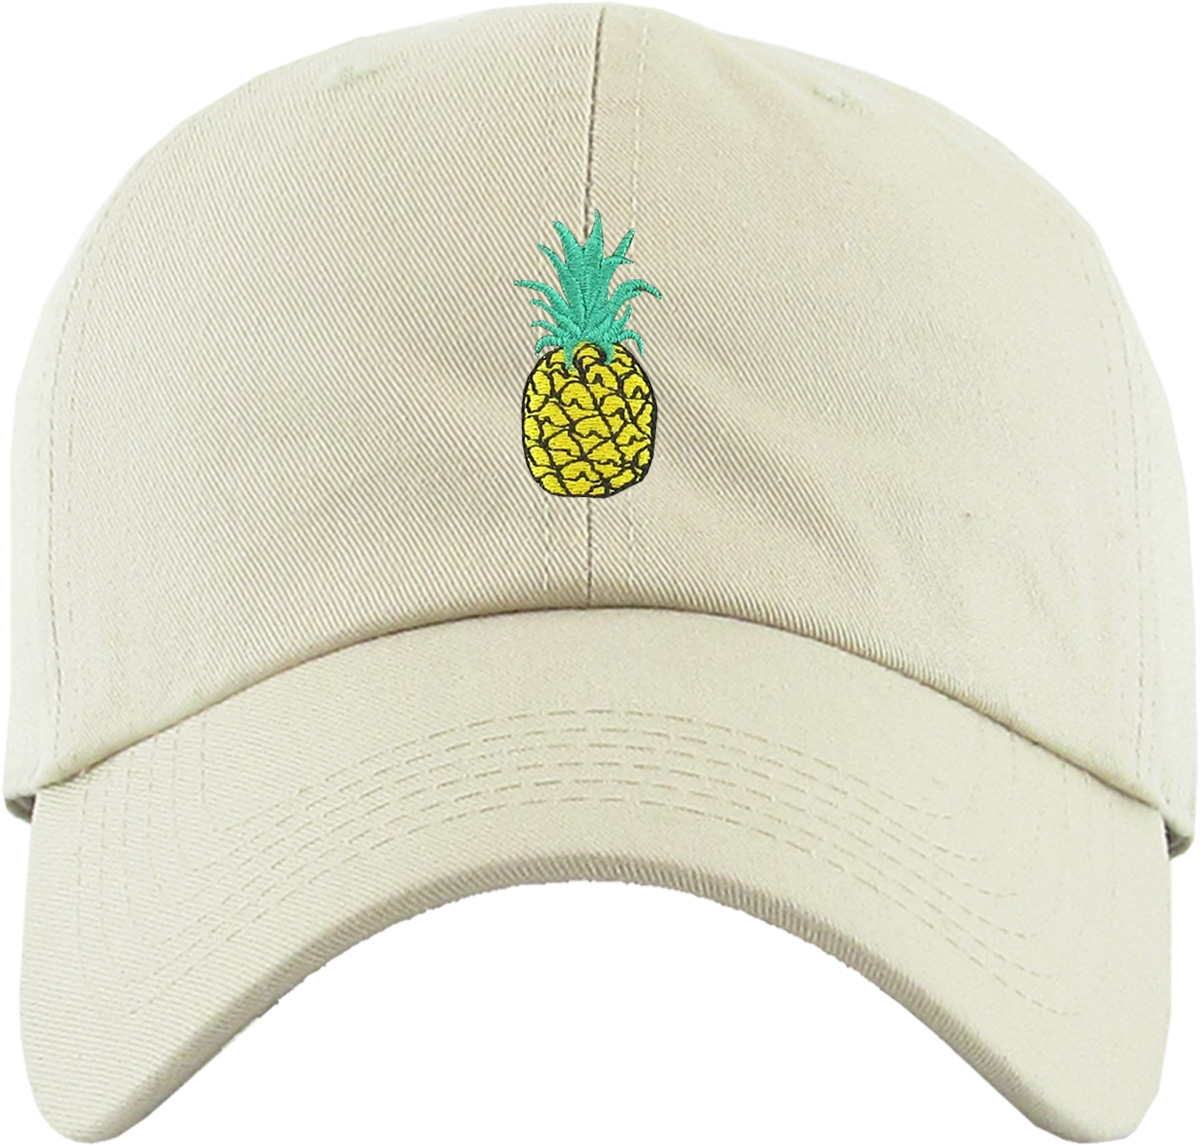 Pineapple Black Dad Hat Baseball Cap Polo Style Unconstructed Adjustable  Banana Guac Grape Melon Berry Lemon Lime Weed Marijuana Cannabis -  Walmart.com cbeec3ce6116